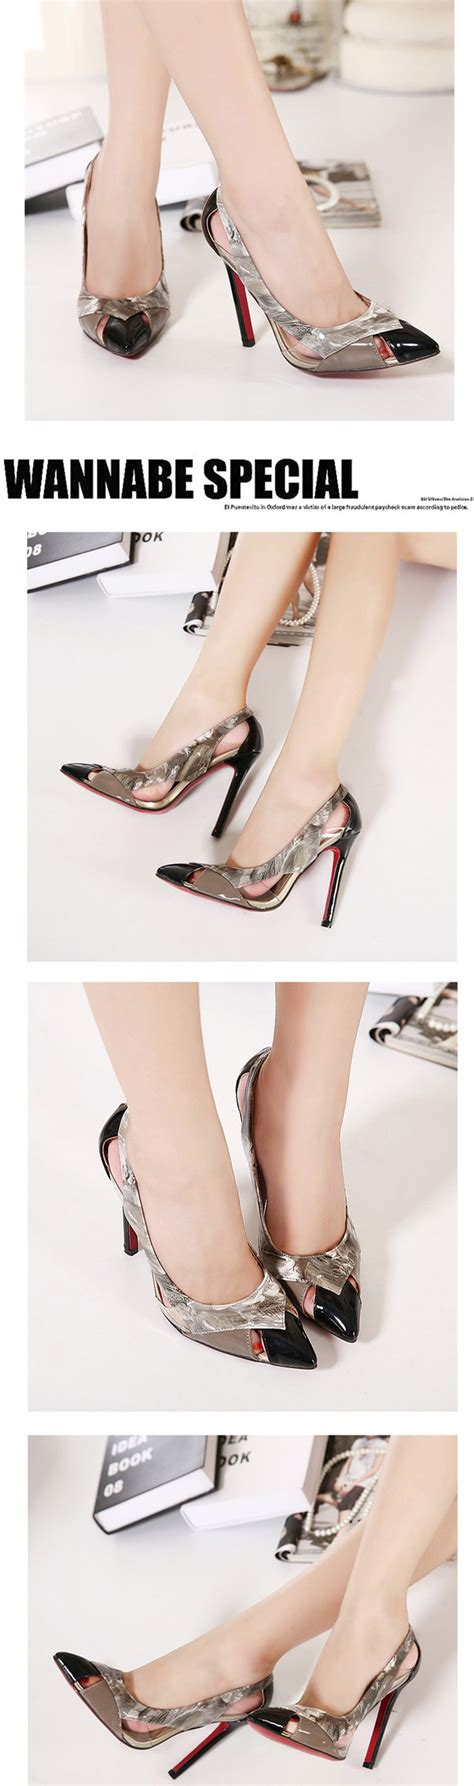 Heels D G 653 7 size 4 9 summer shoes bottom high heels